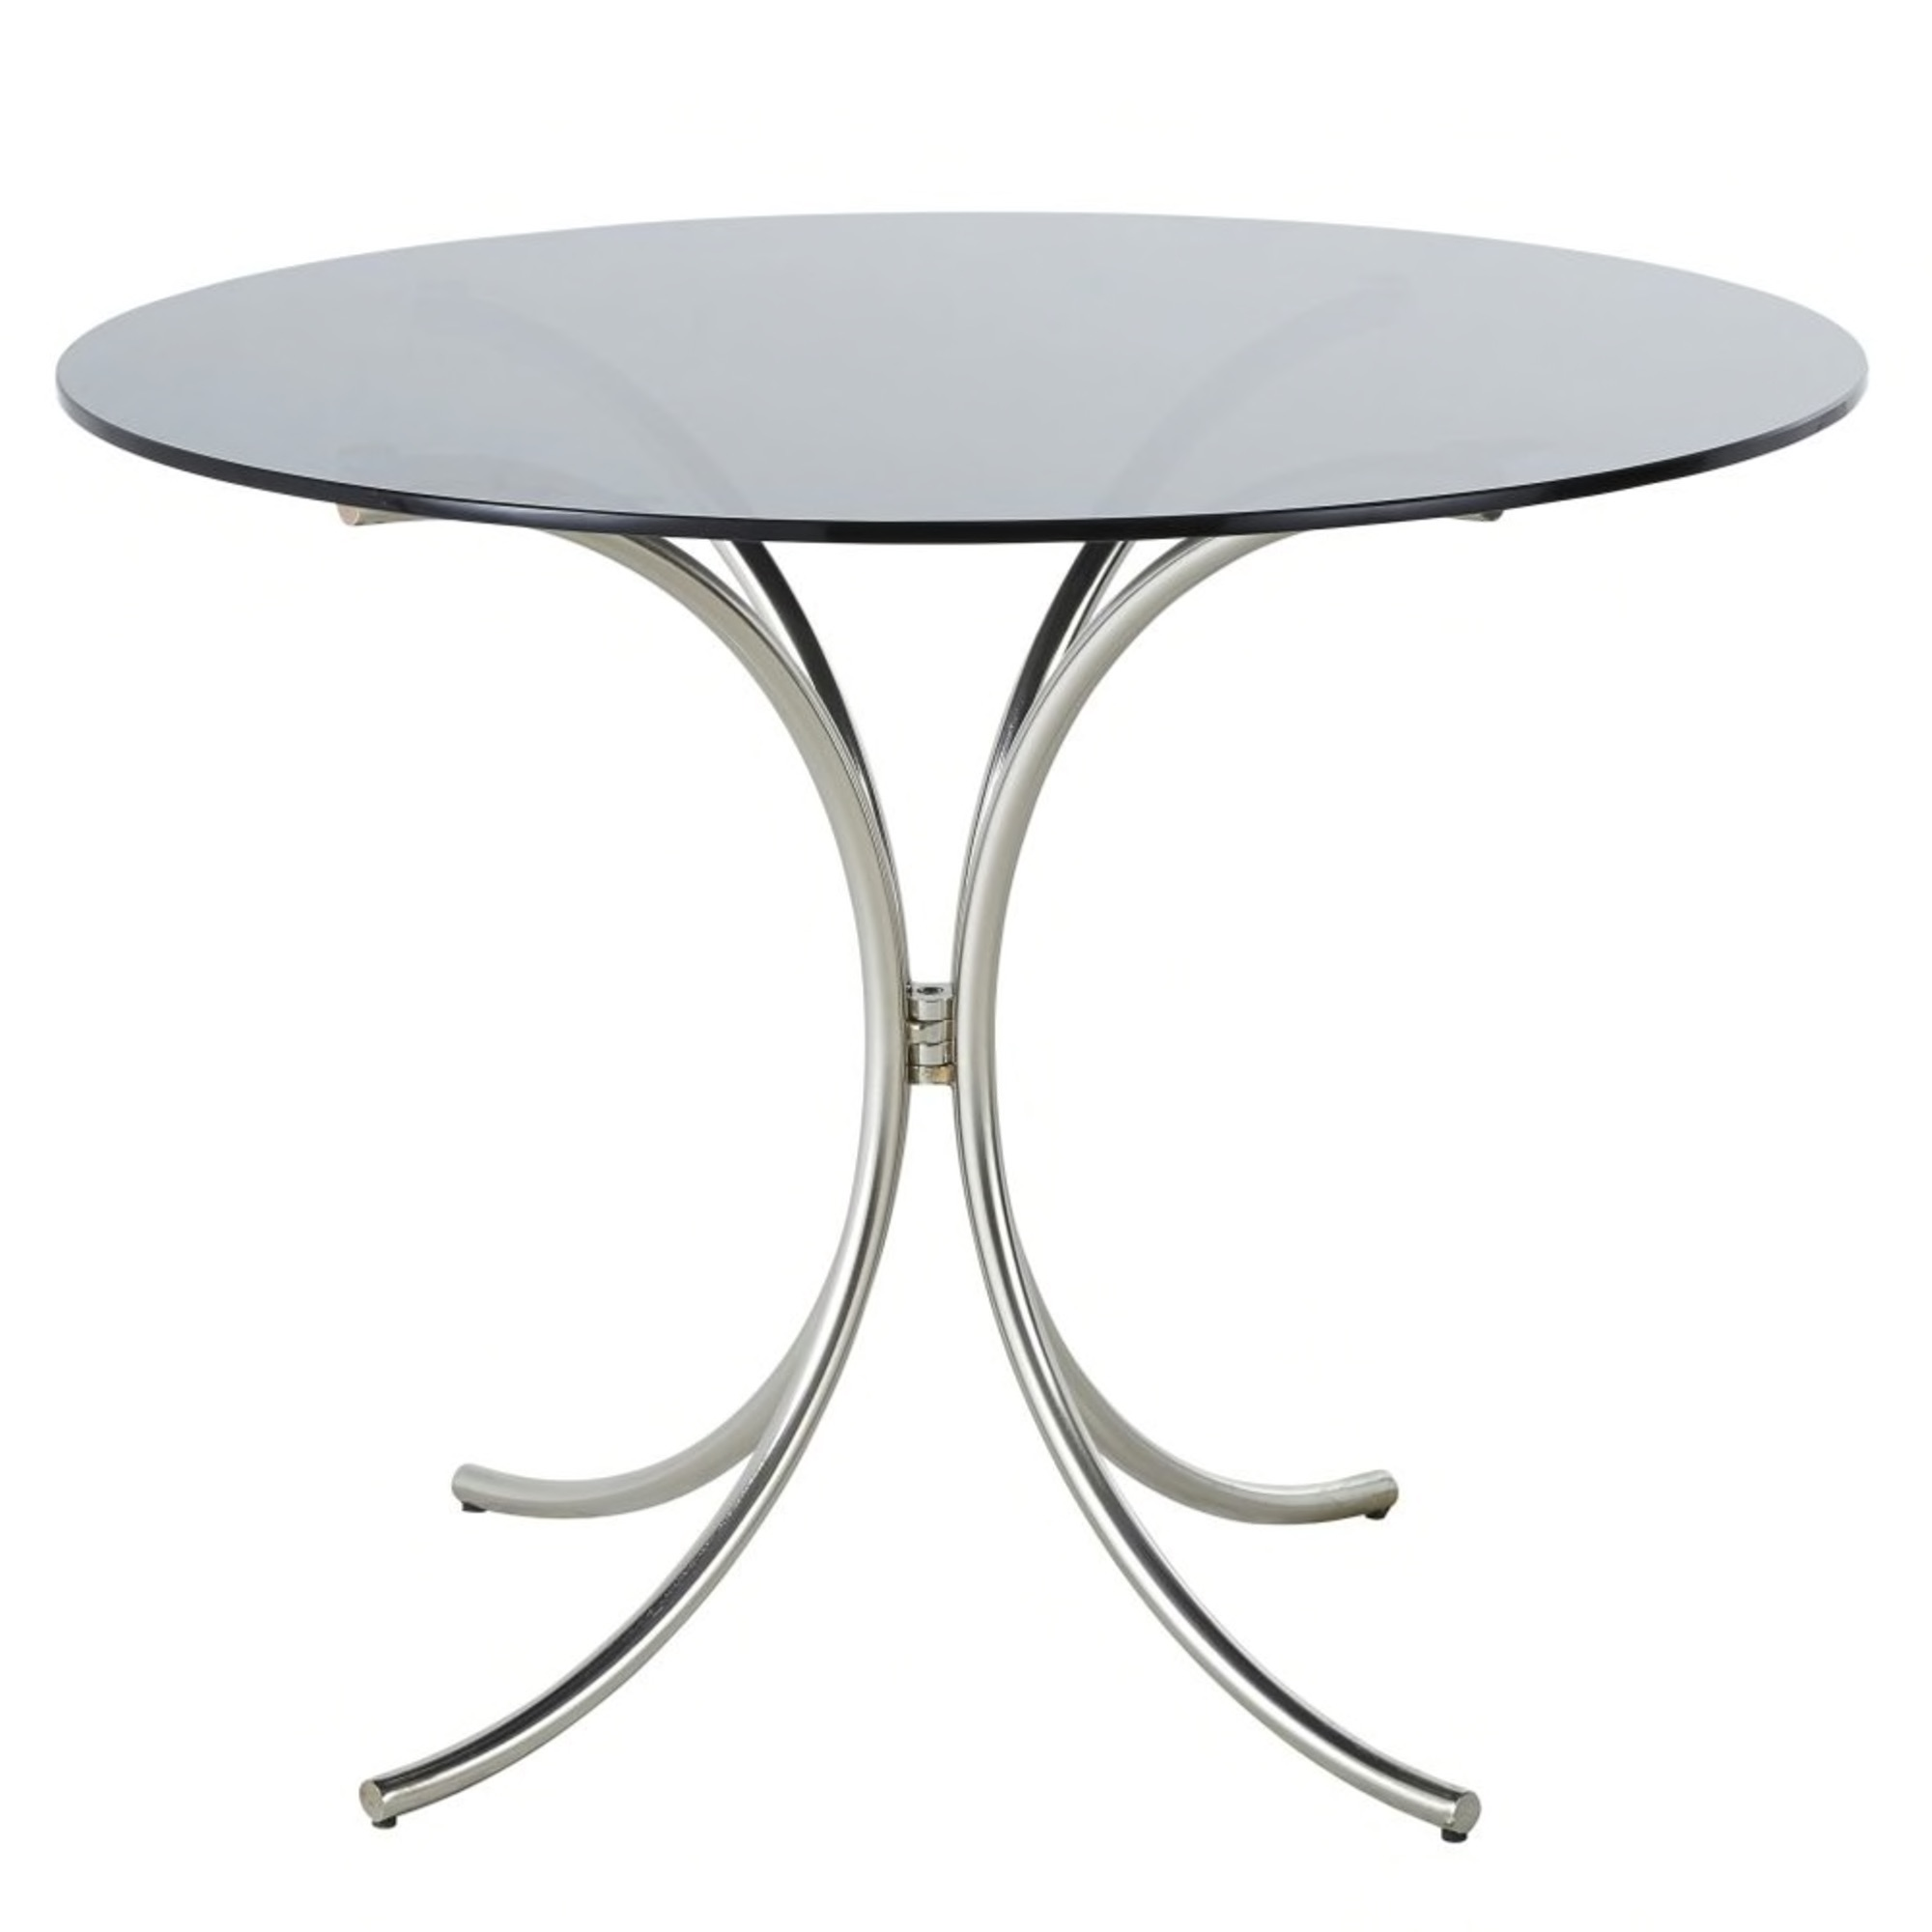 Round Smoked Tempered Glass 4-Seater Dining Table D100 £378.00